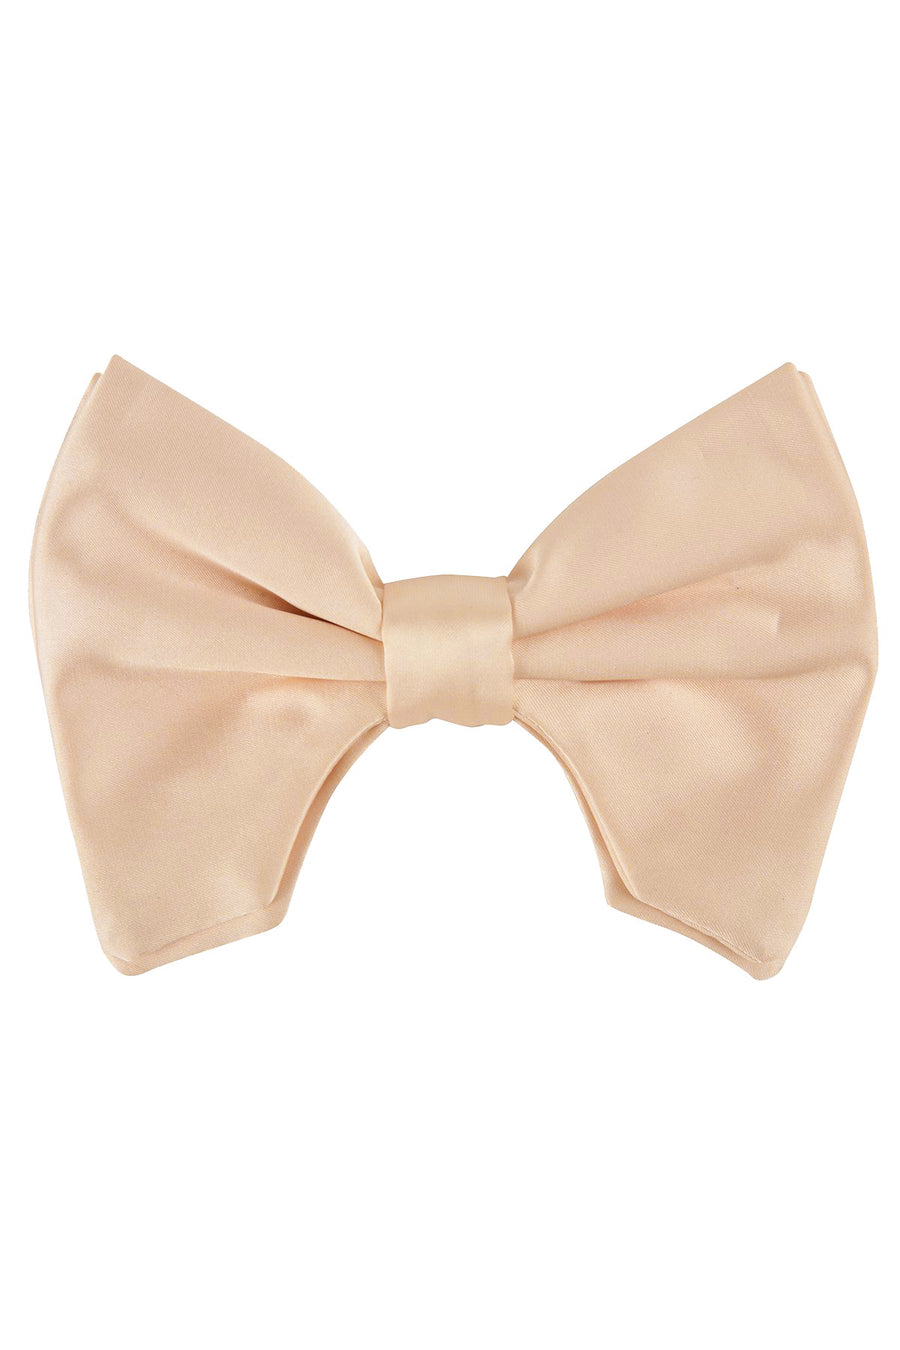 Avant Garde Bowtie - Champagne satin - PROJECT 6, modest fashion